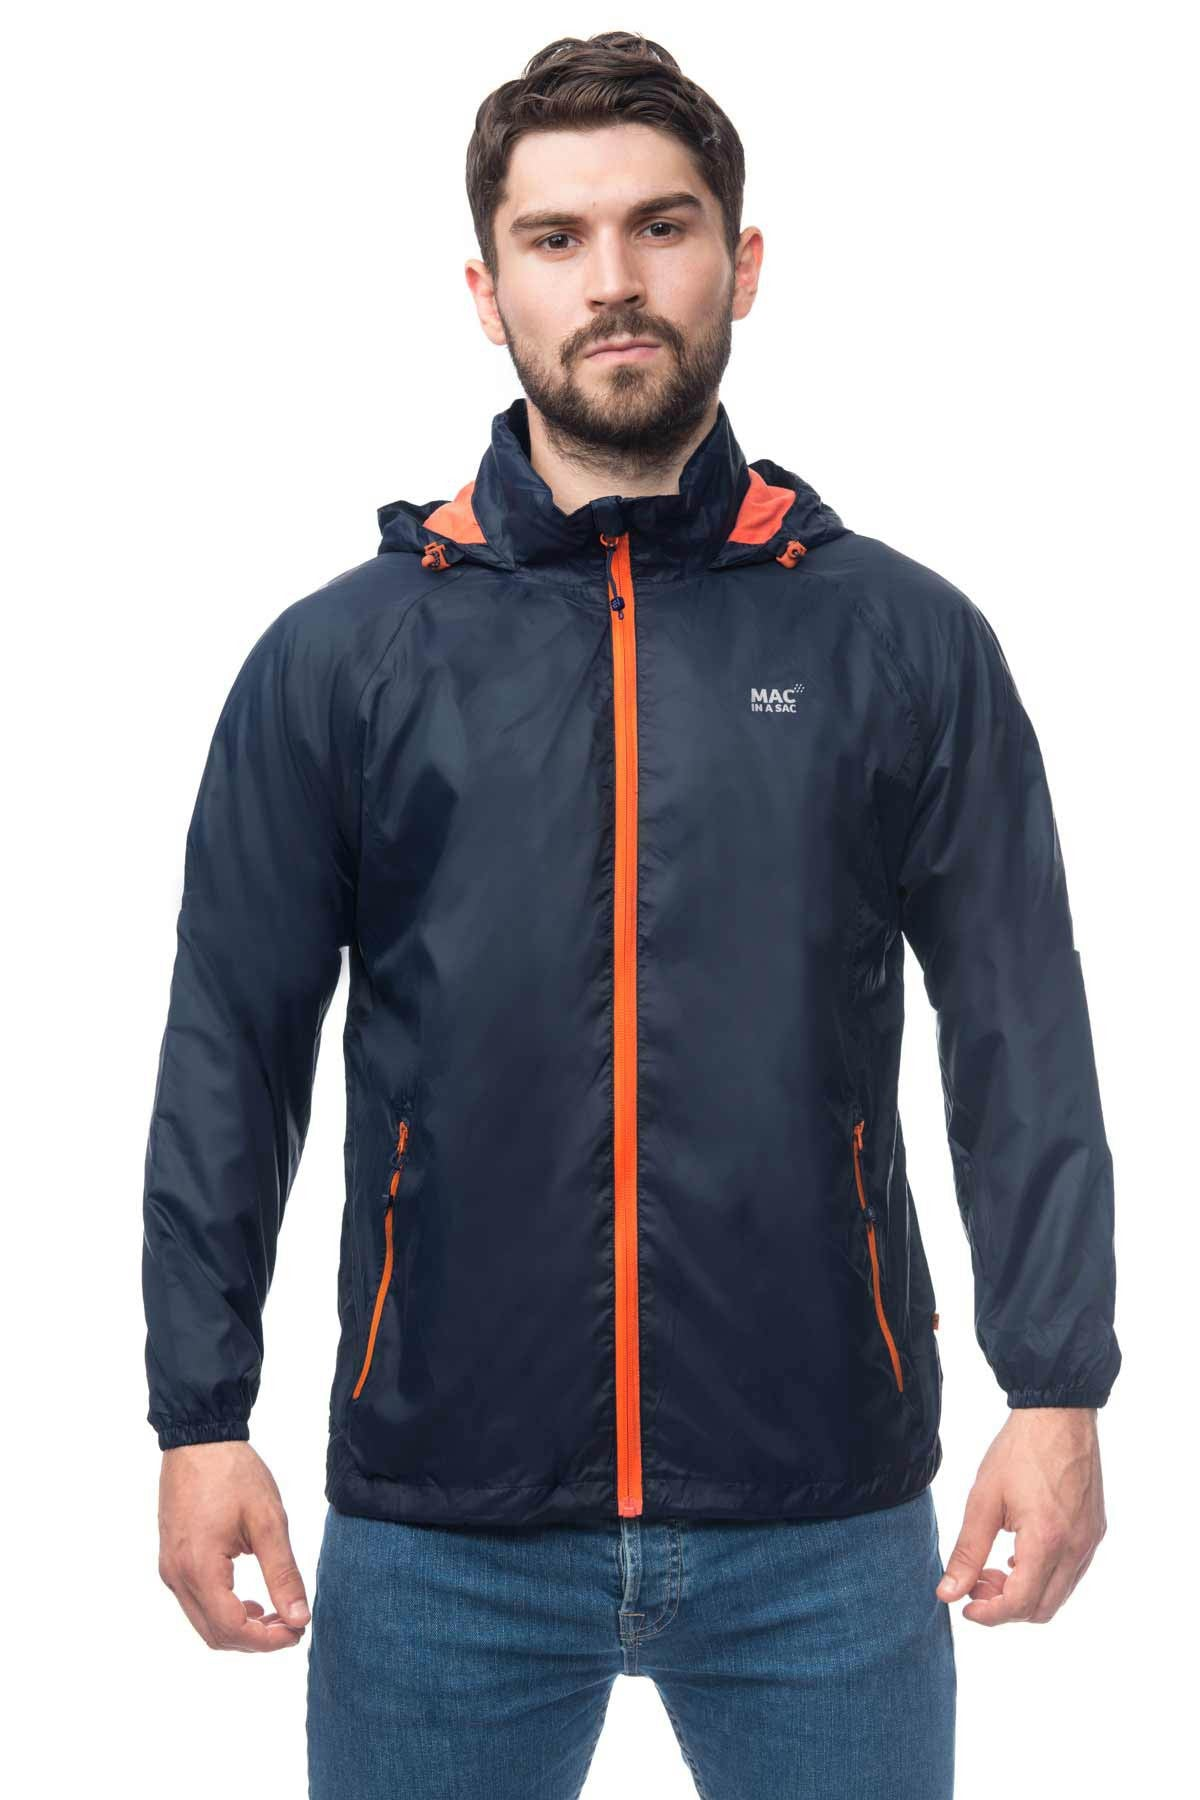 Mac in a Sac Synergy Jersey Lined Packable Waterproof Jacket in Navy, with contrast zip